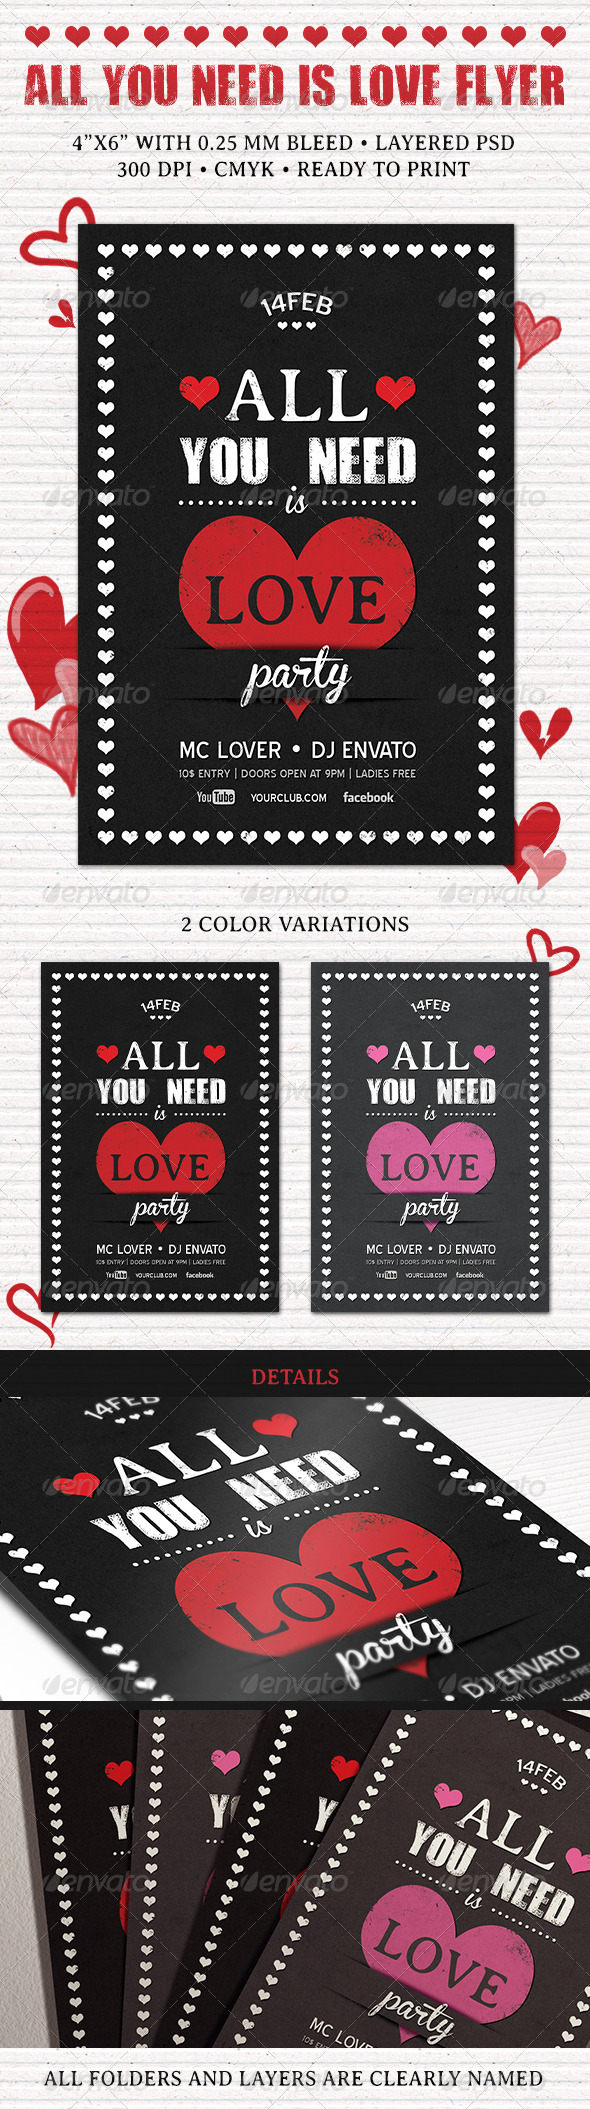 GraphicRiver All You Need is Love Flyer 6341763